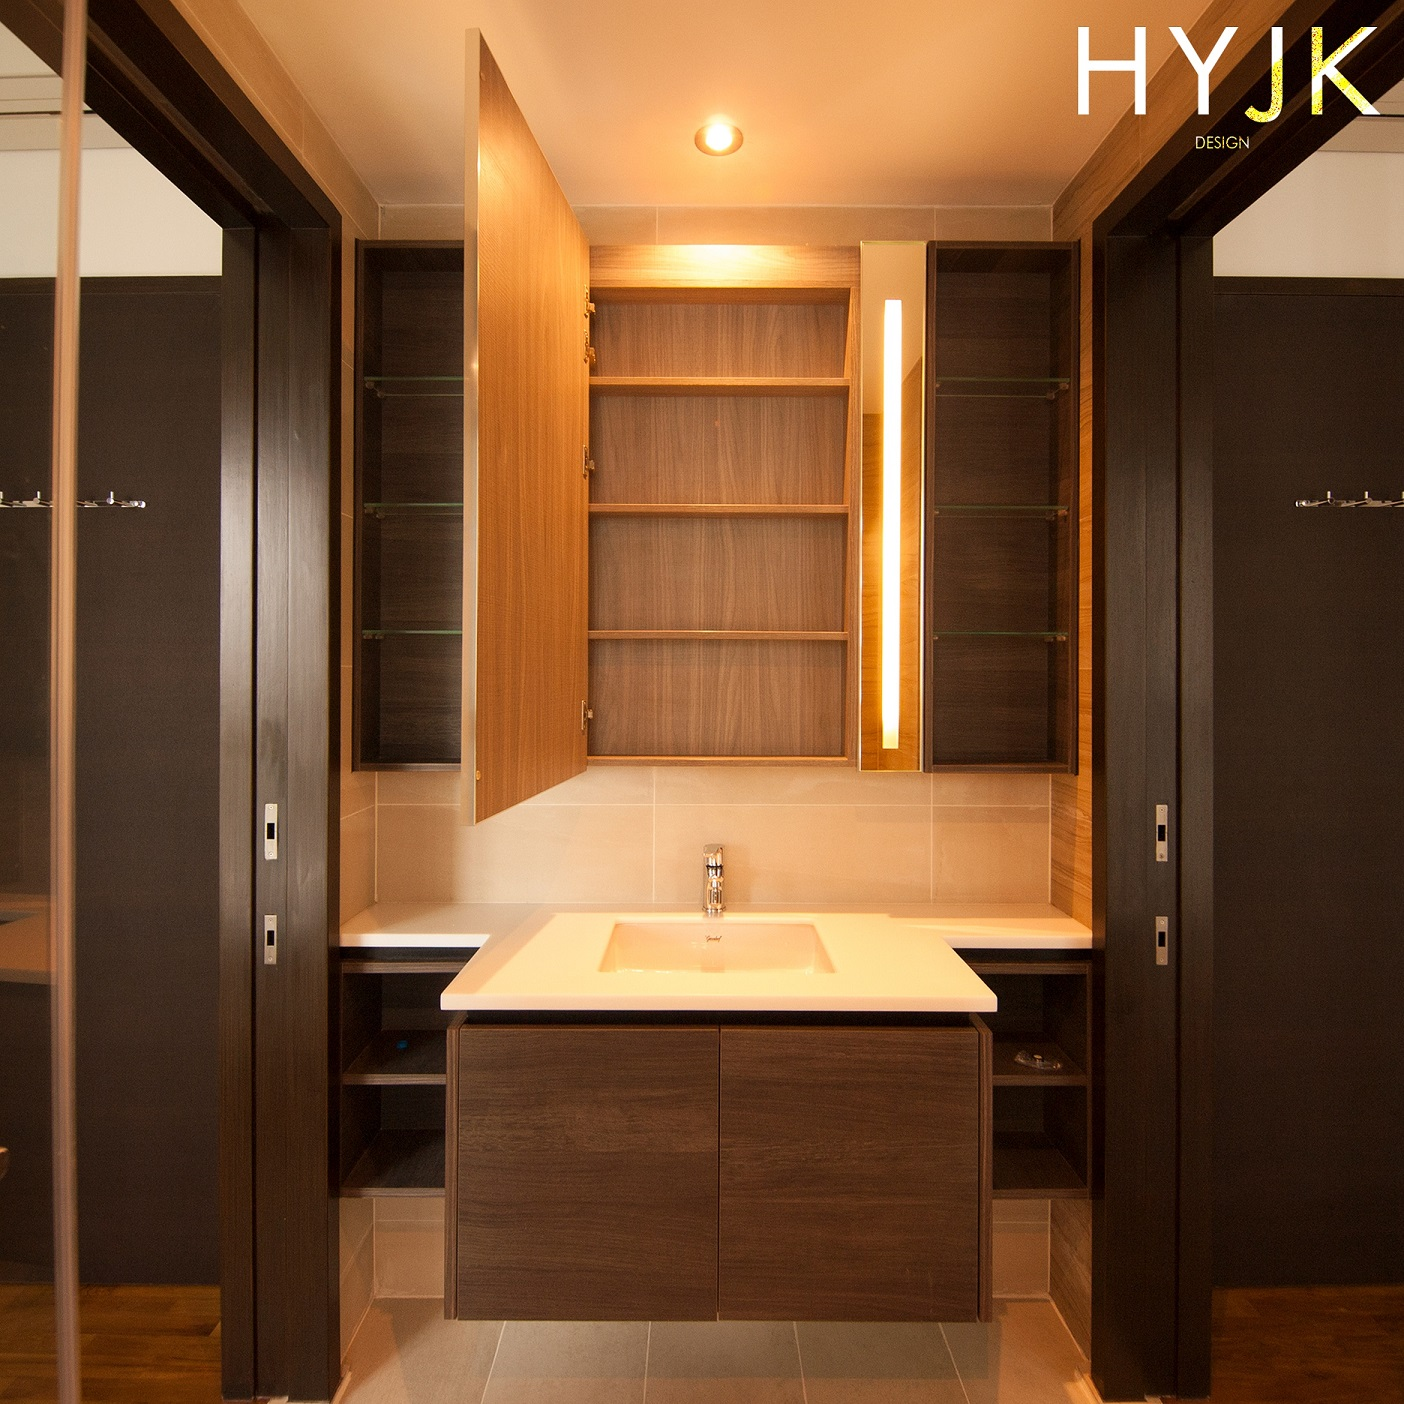 An inviting bathroom with vanity lights